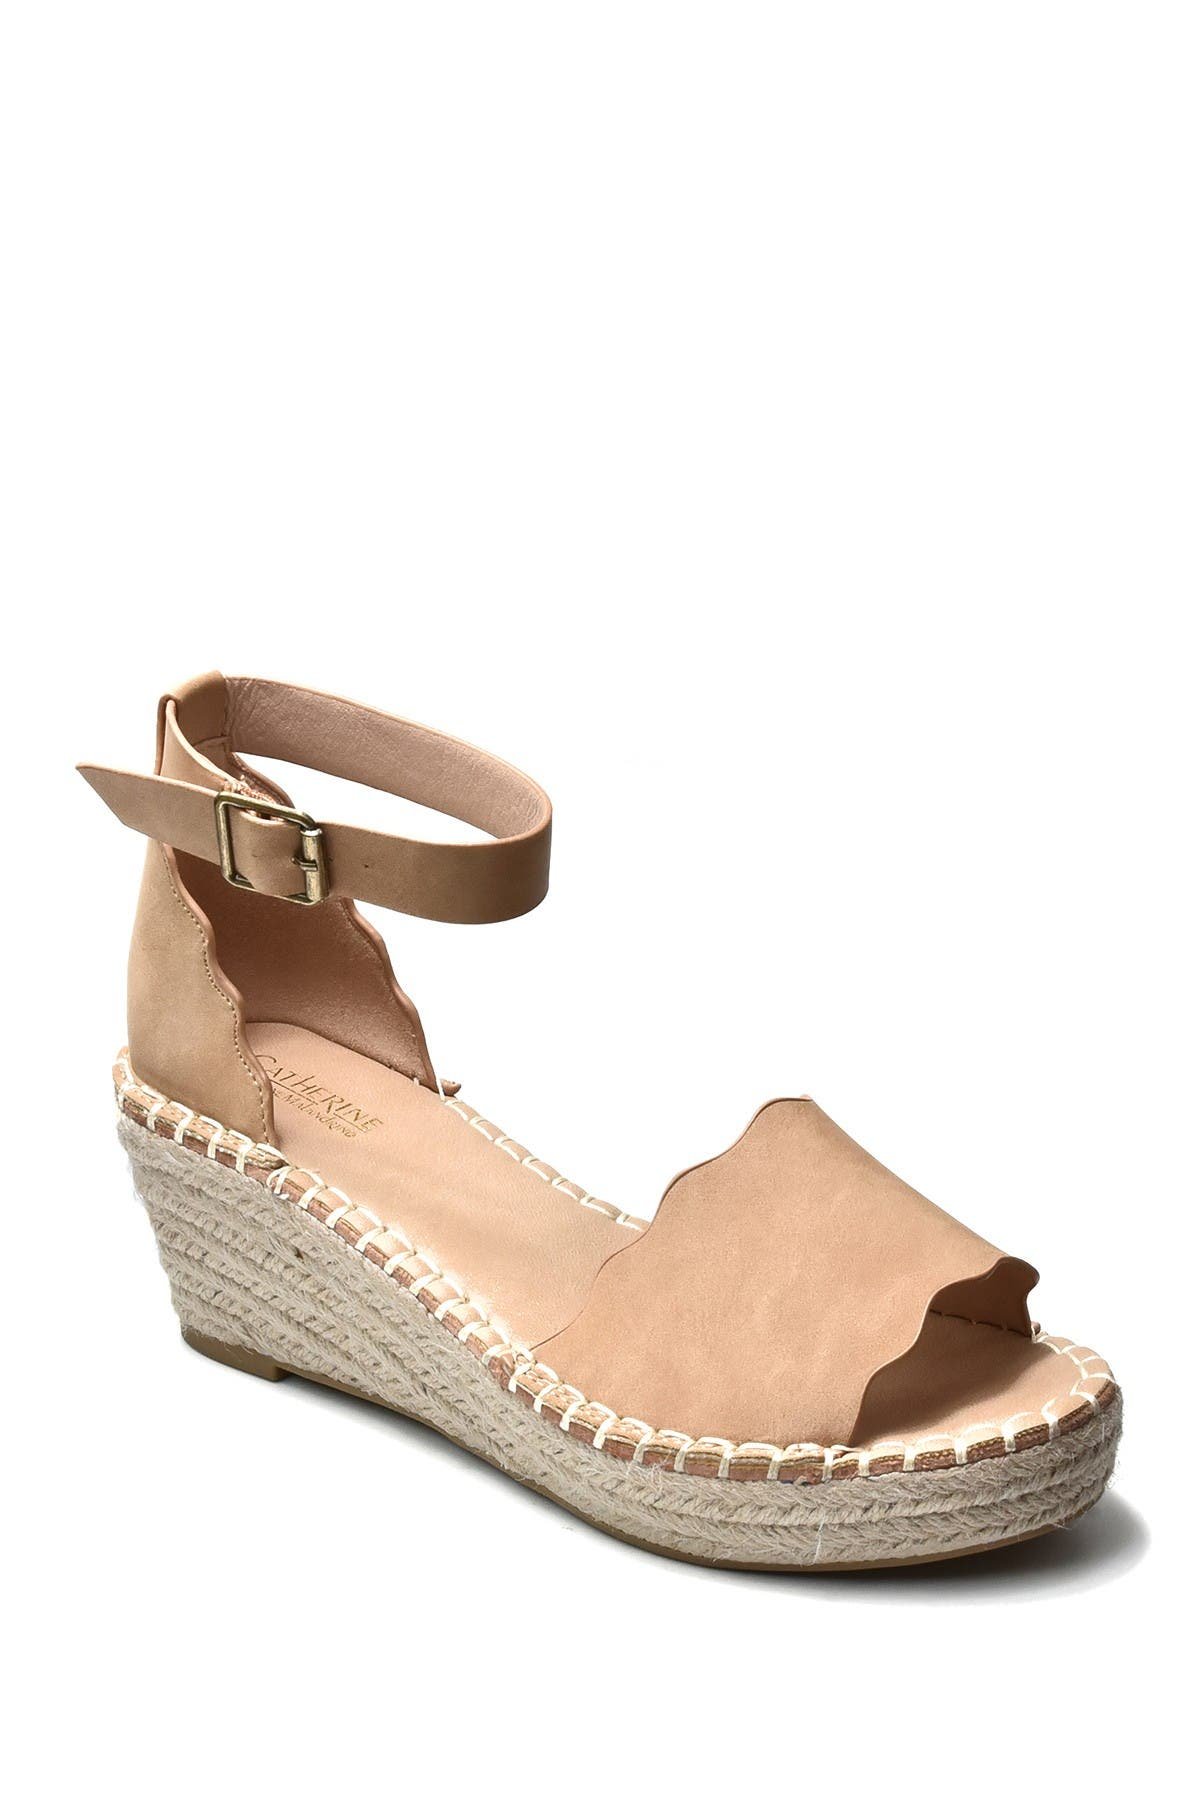 Image of Catherine Catherine Malandrino Margo Scalloped Espadrille Platform Wedge Sandal